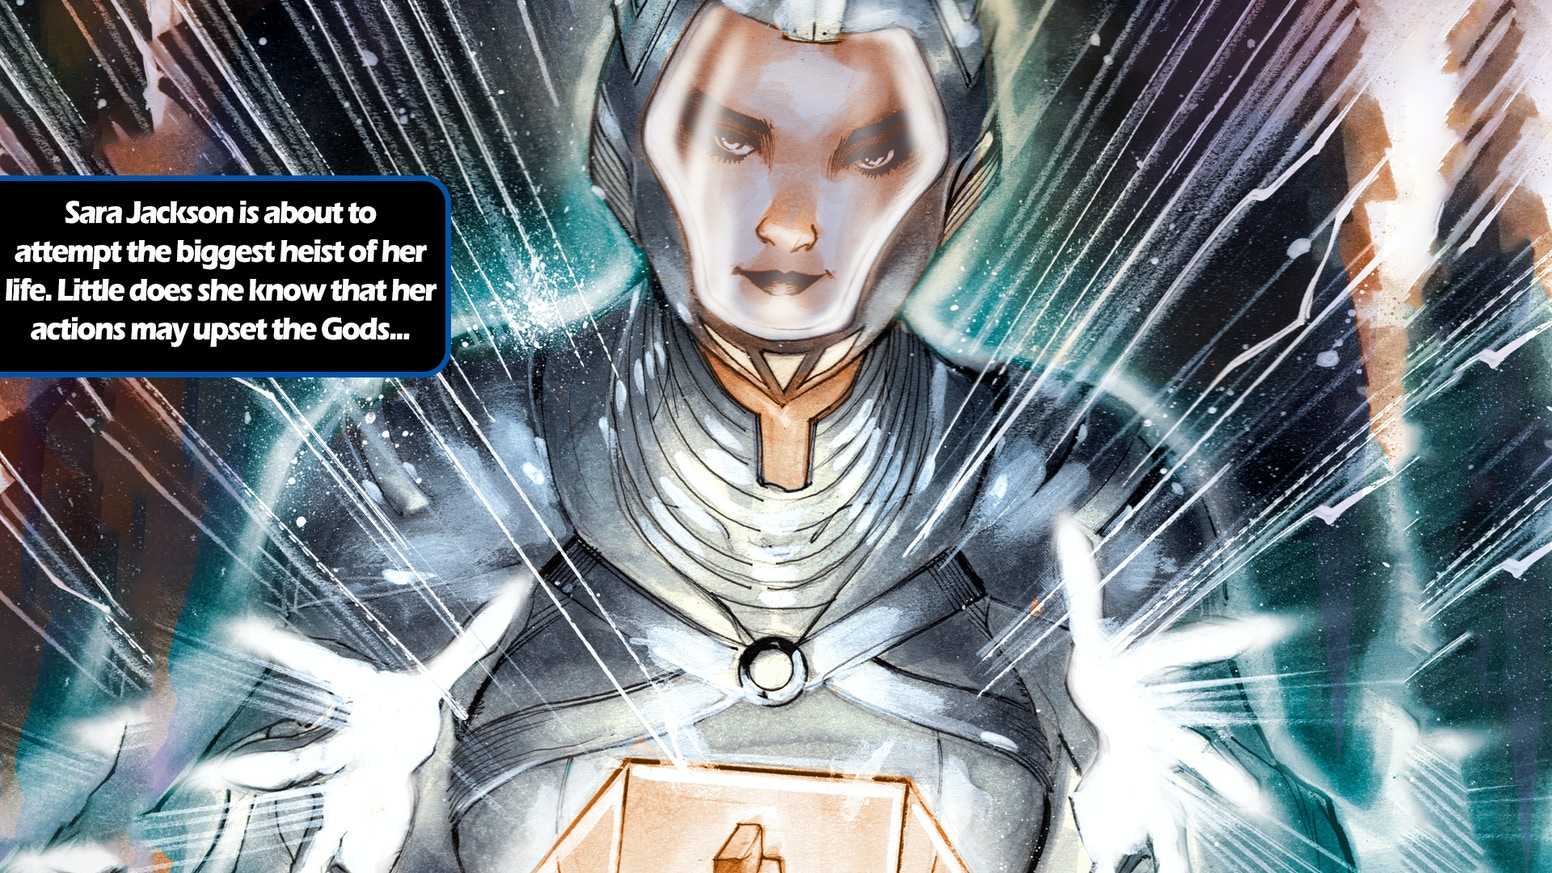 A teleporting thief-for-hire takes on more than she & her team could ever expect in this mythic/sci-fi action graphic novel.